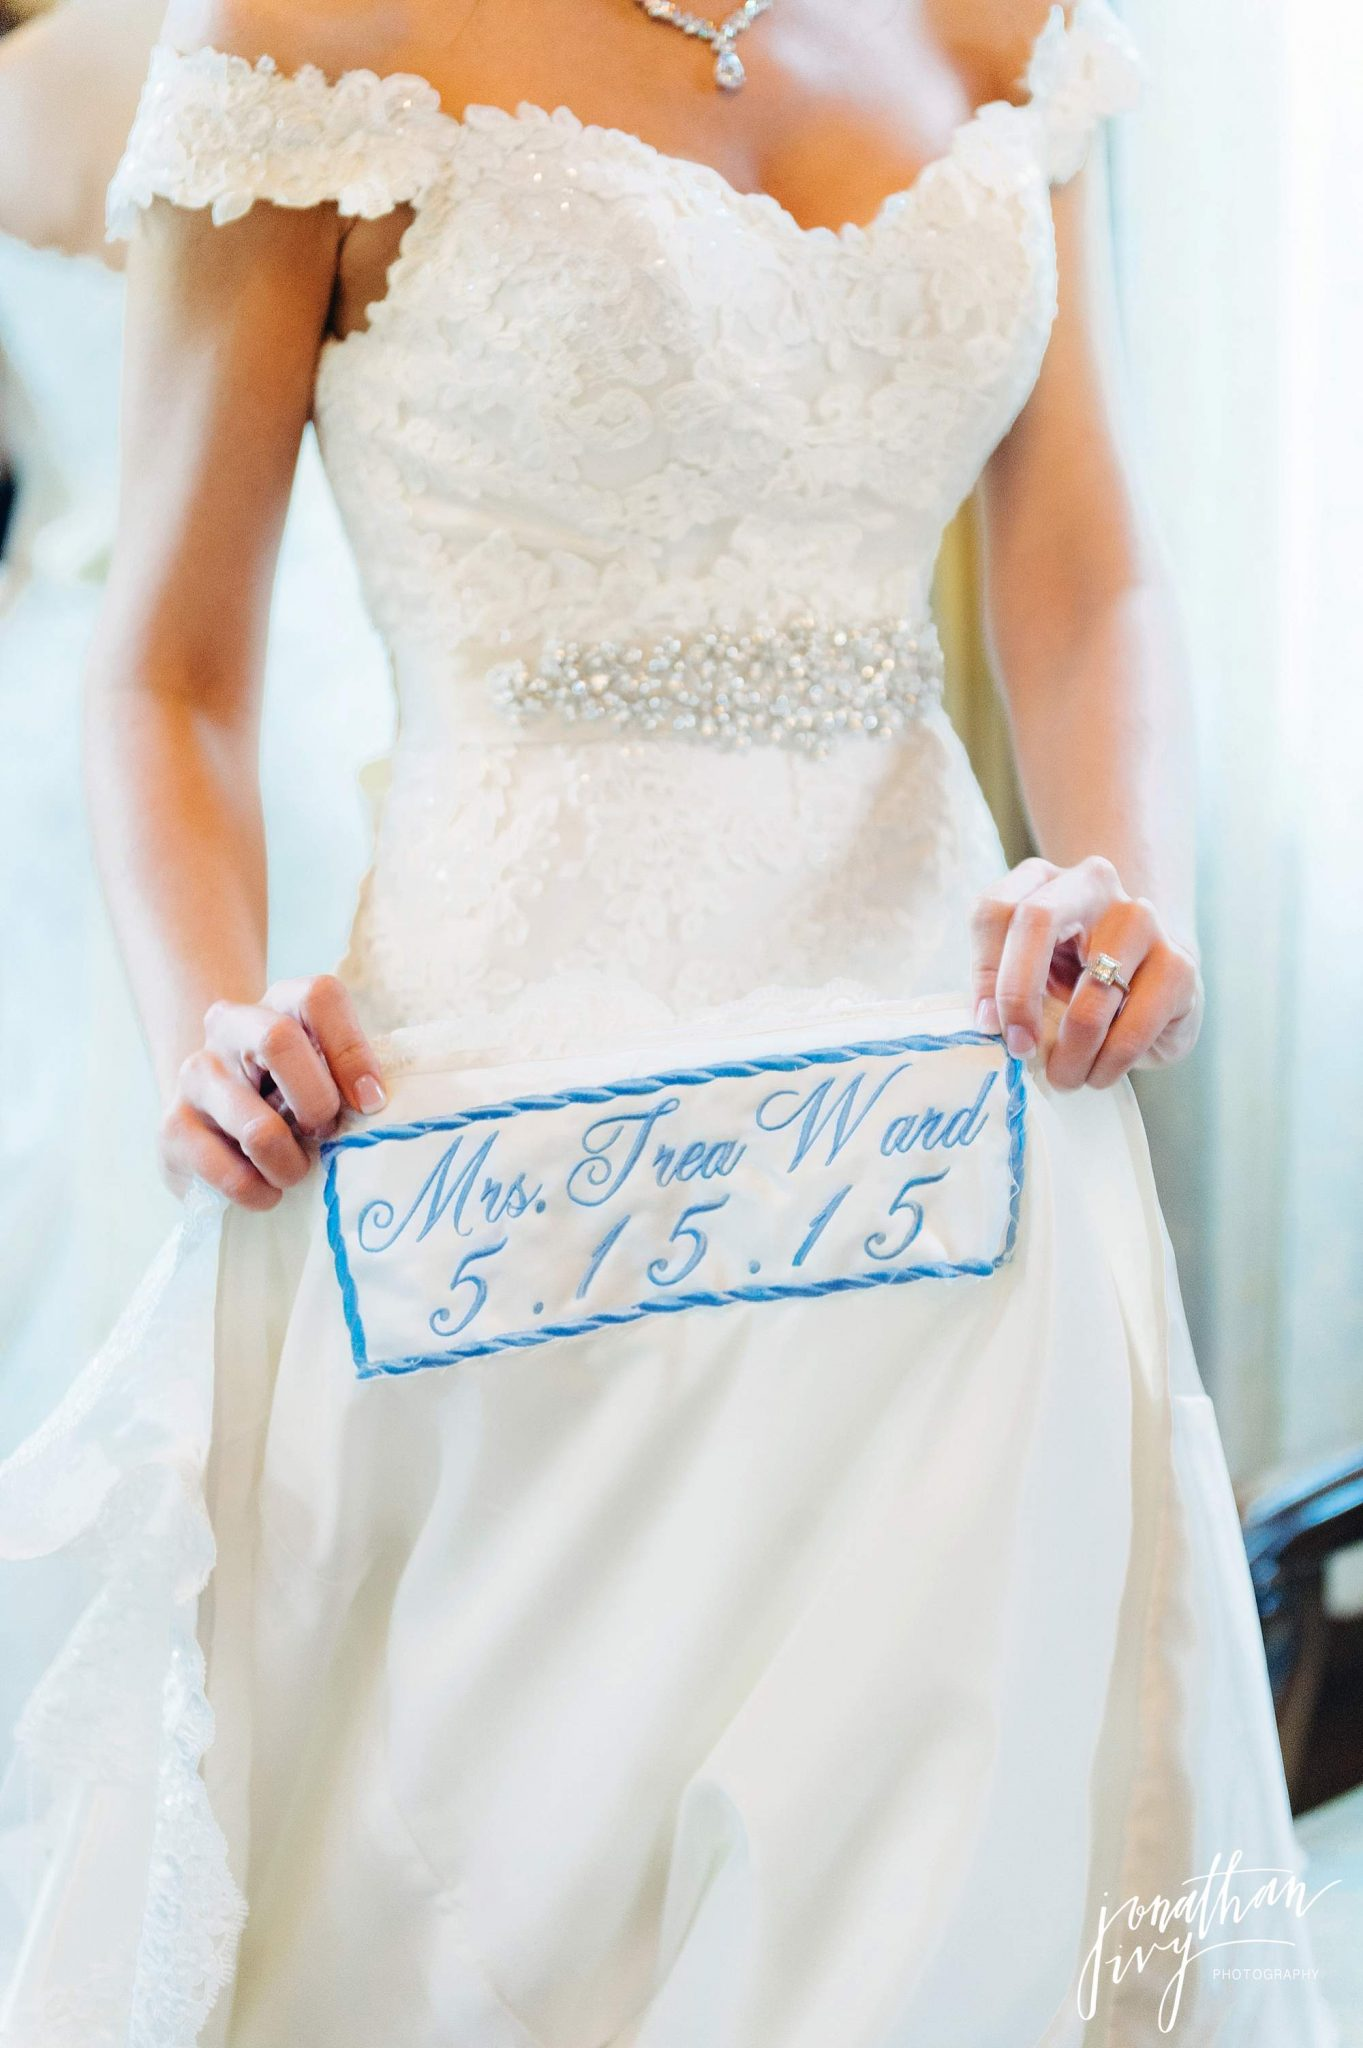 something blue embroidered wedding date on dress hem line